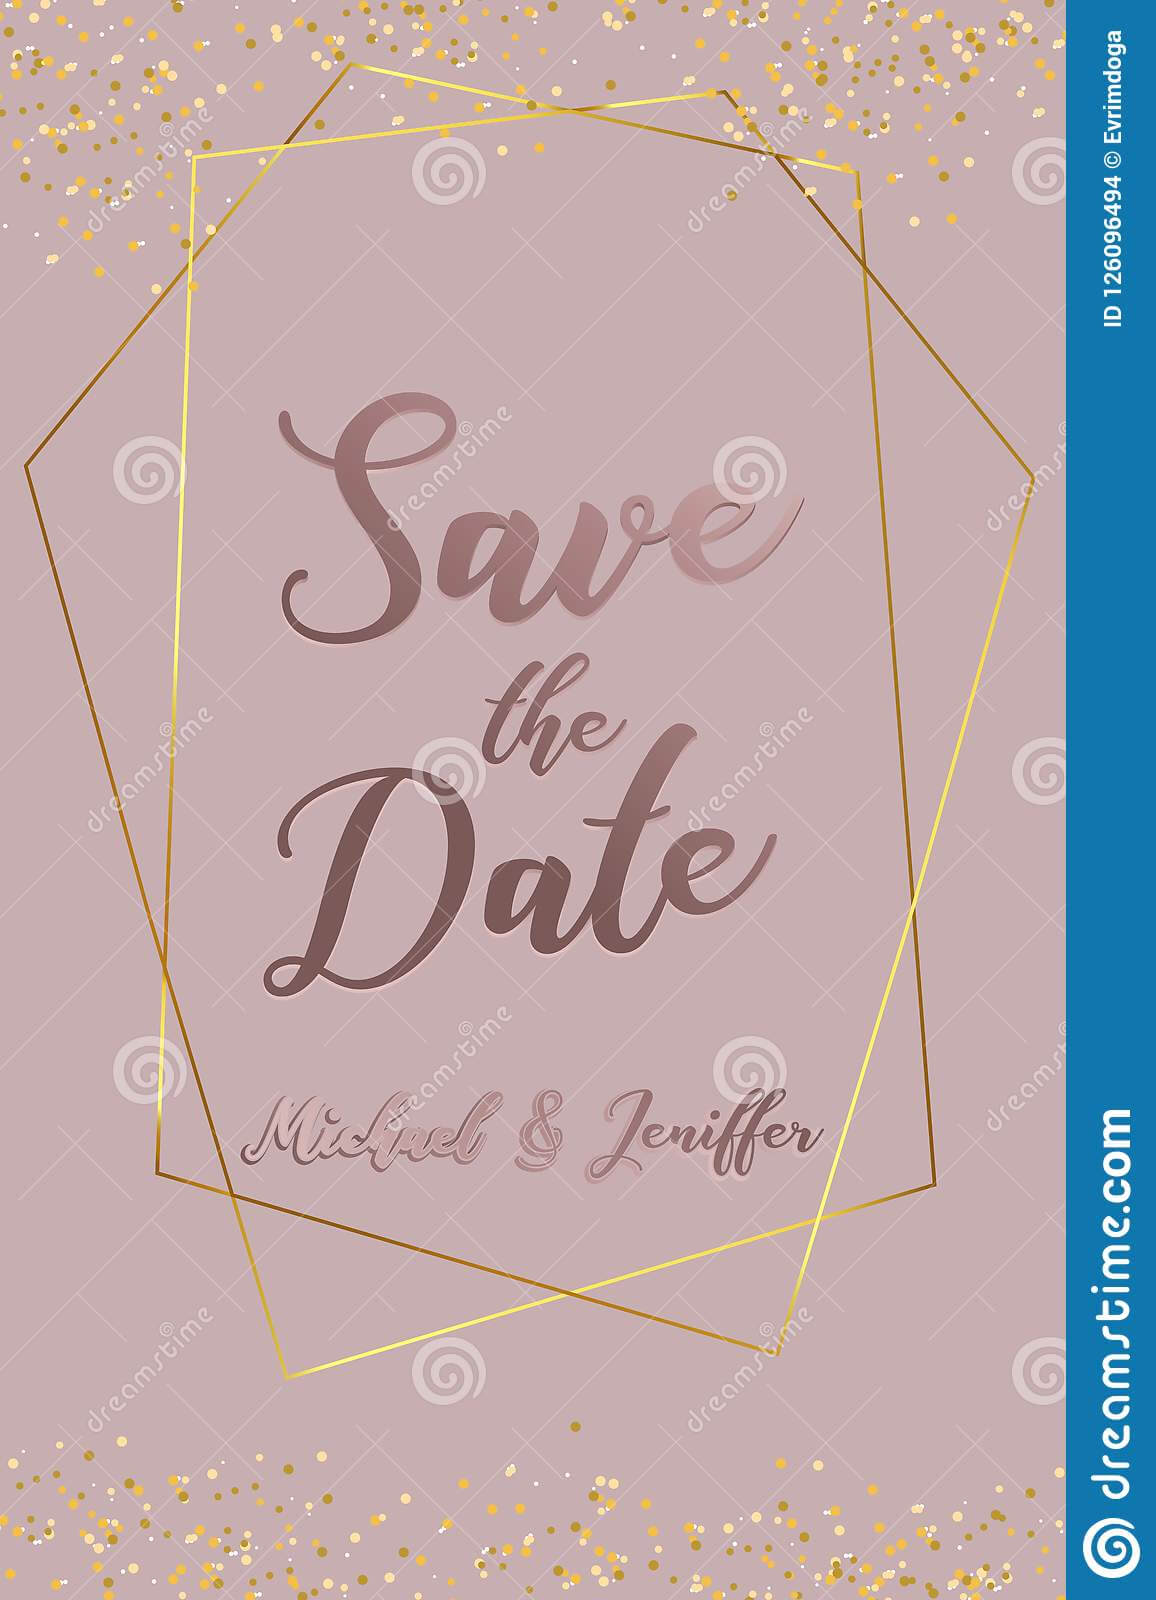 Wedding Invitation, Thank You Card, Save The Date Card With Save The Date Banner Template